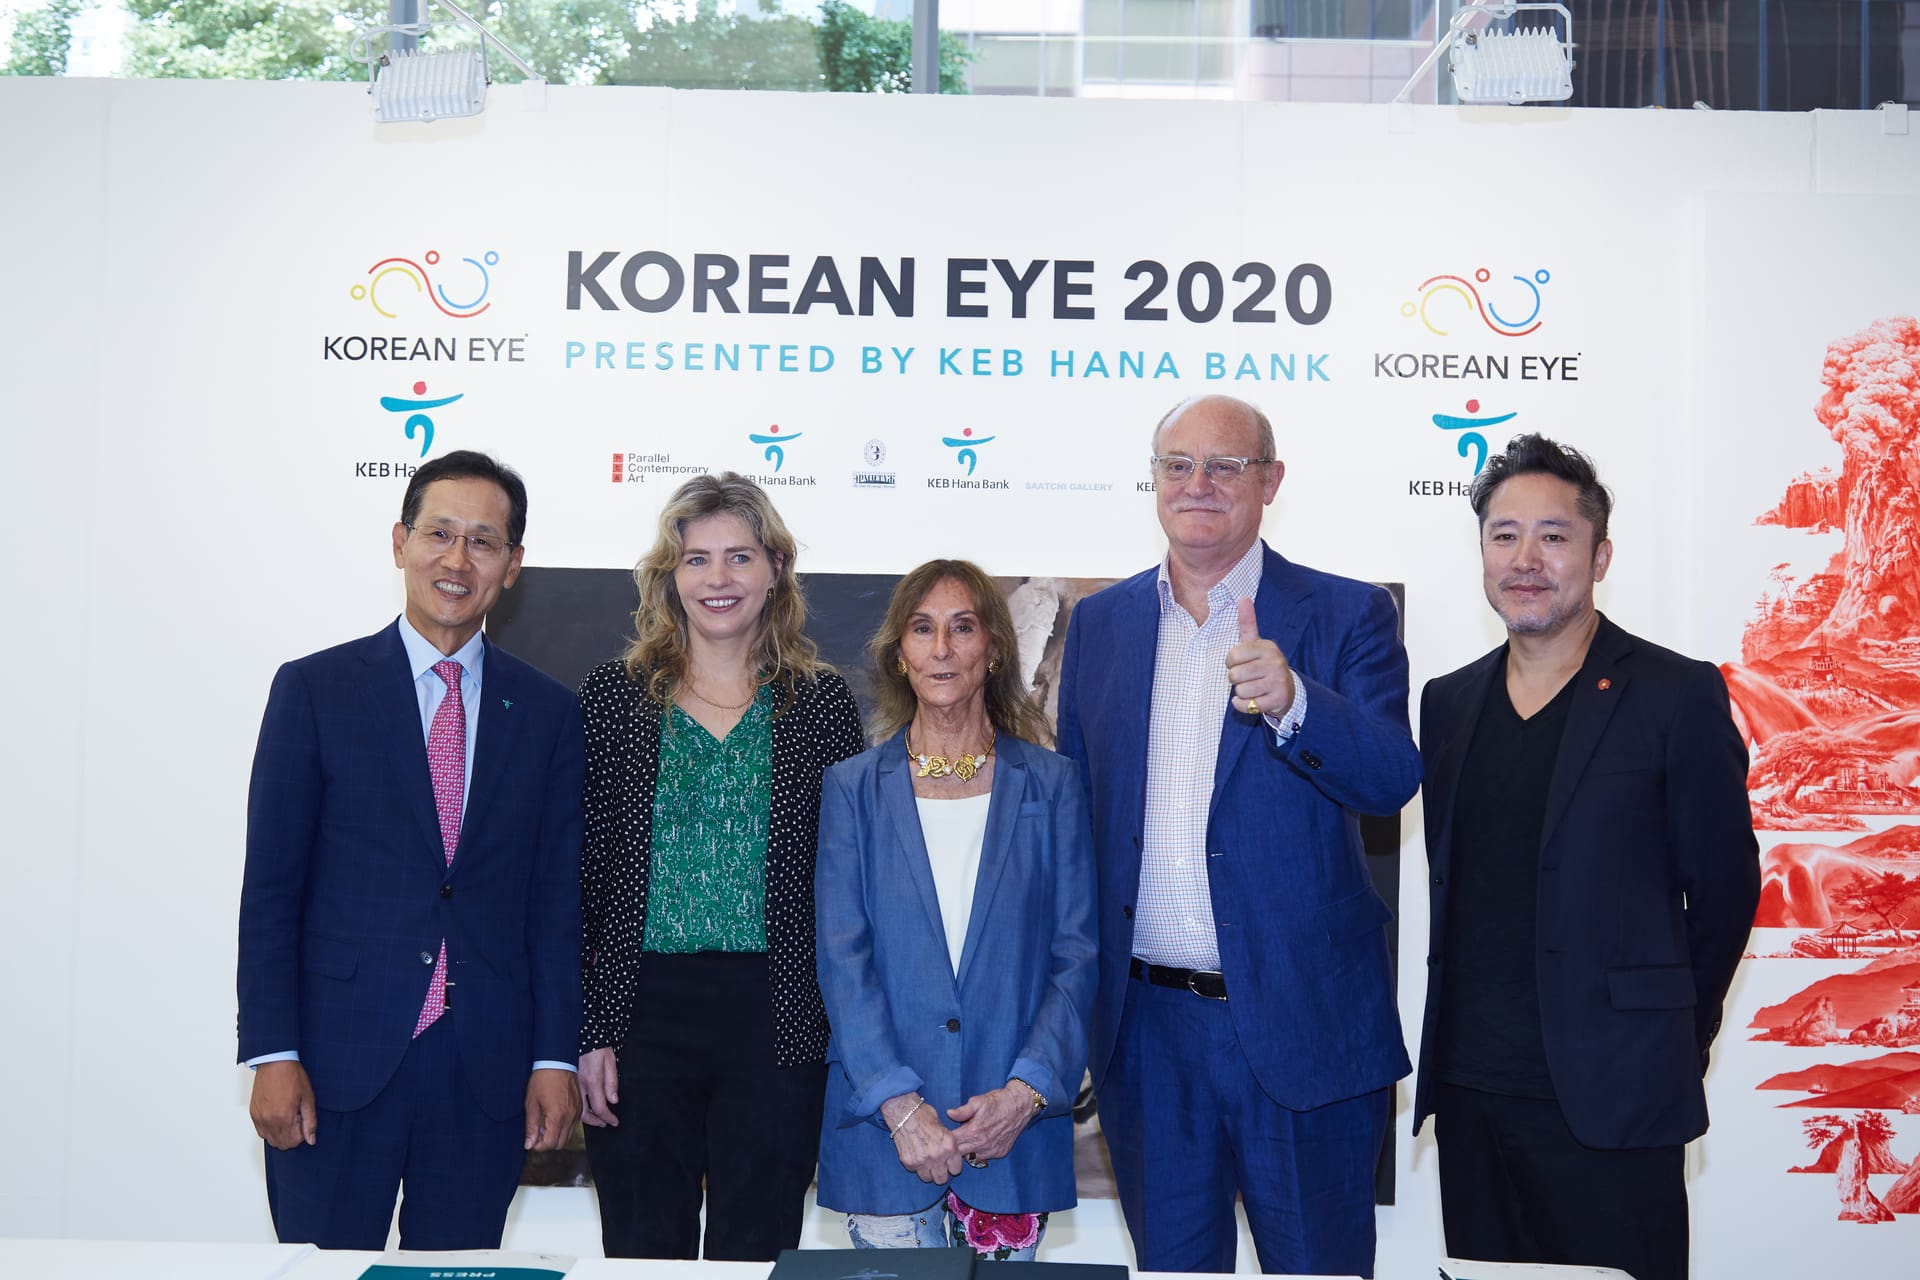 Mr Ji Sung Kyu, Ms Philly Adams, Mrs Serenella Ciclitira, Mr David Ciclitira and Mr Seahyun Lee at the launch of Korean Eye 2020